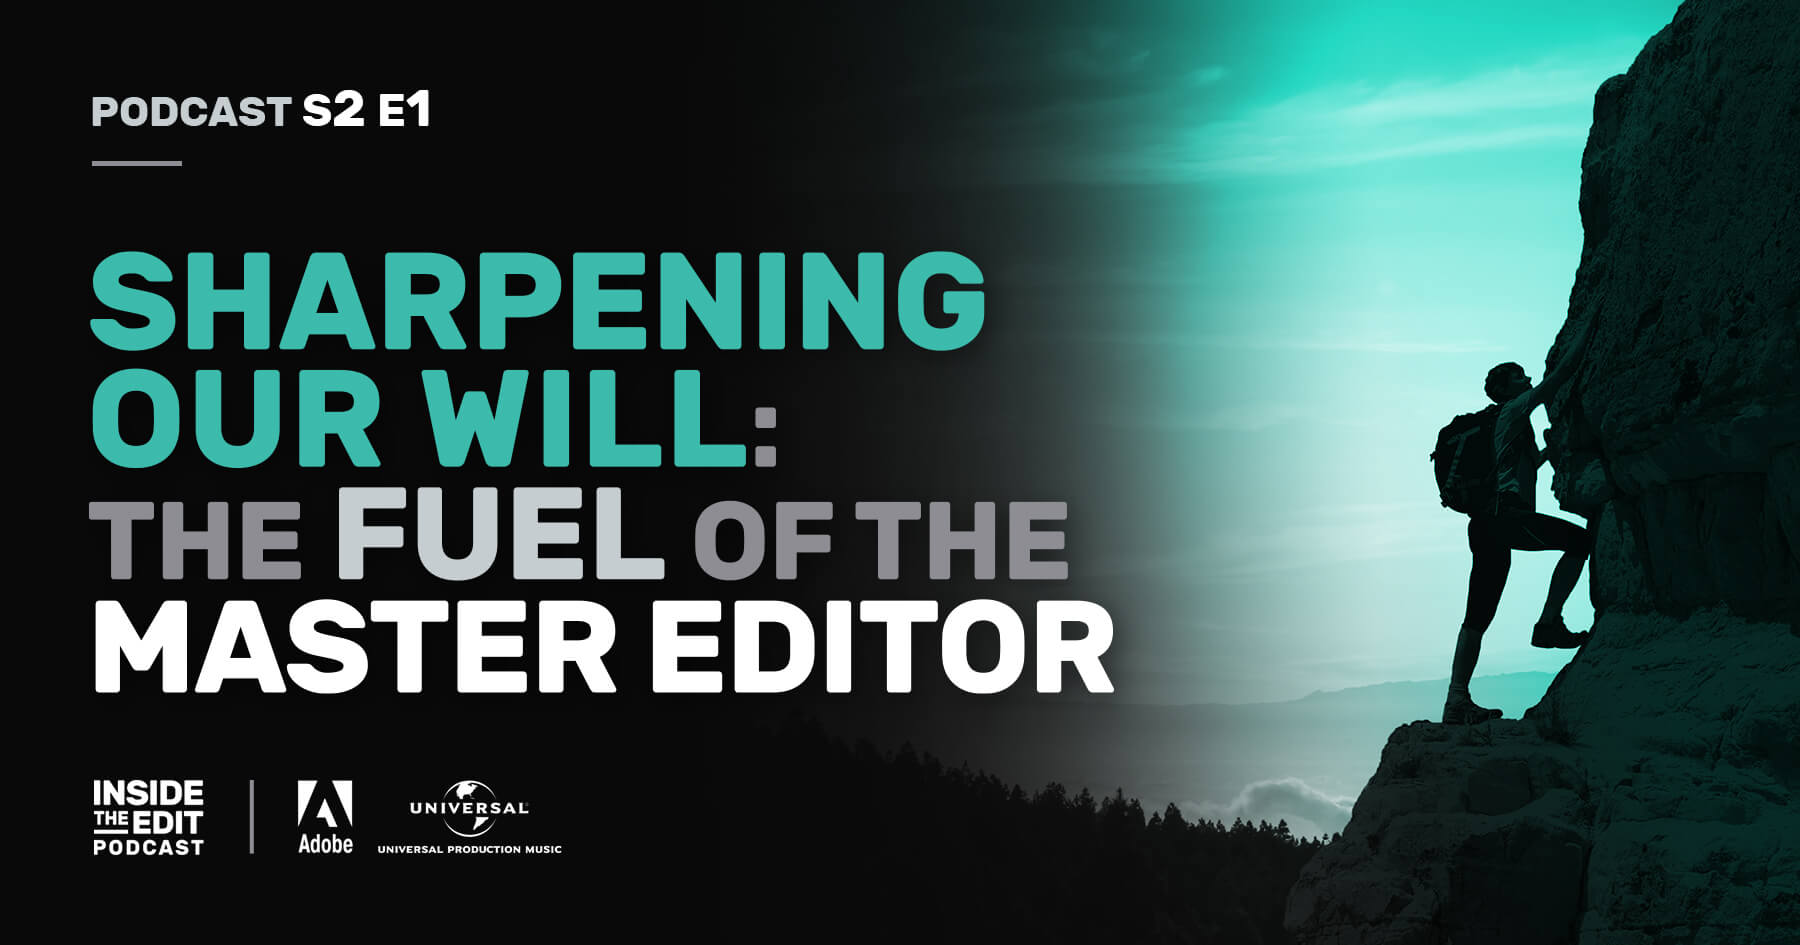 Sharpening Our Will: The Fuel of the Master Editor